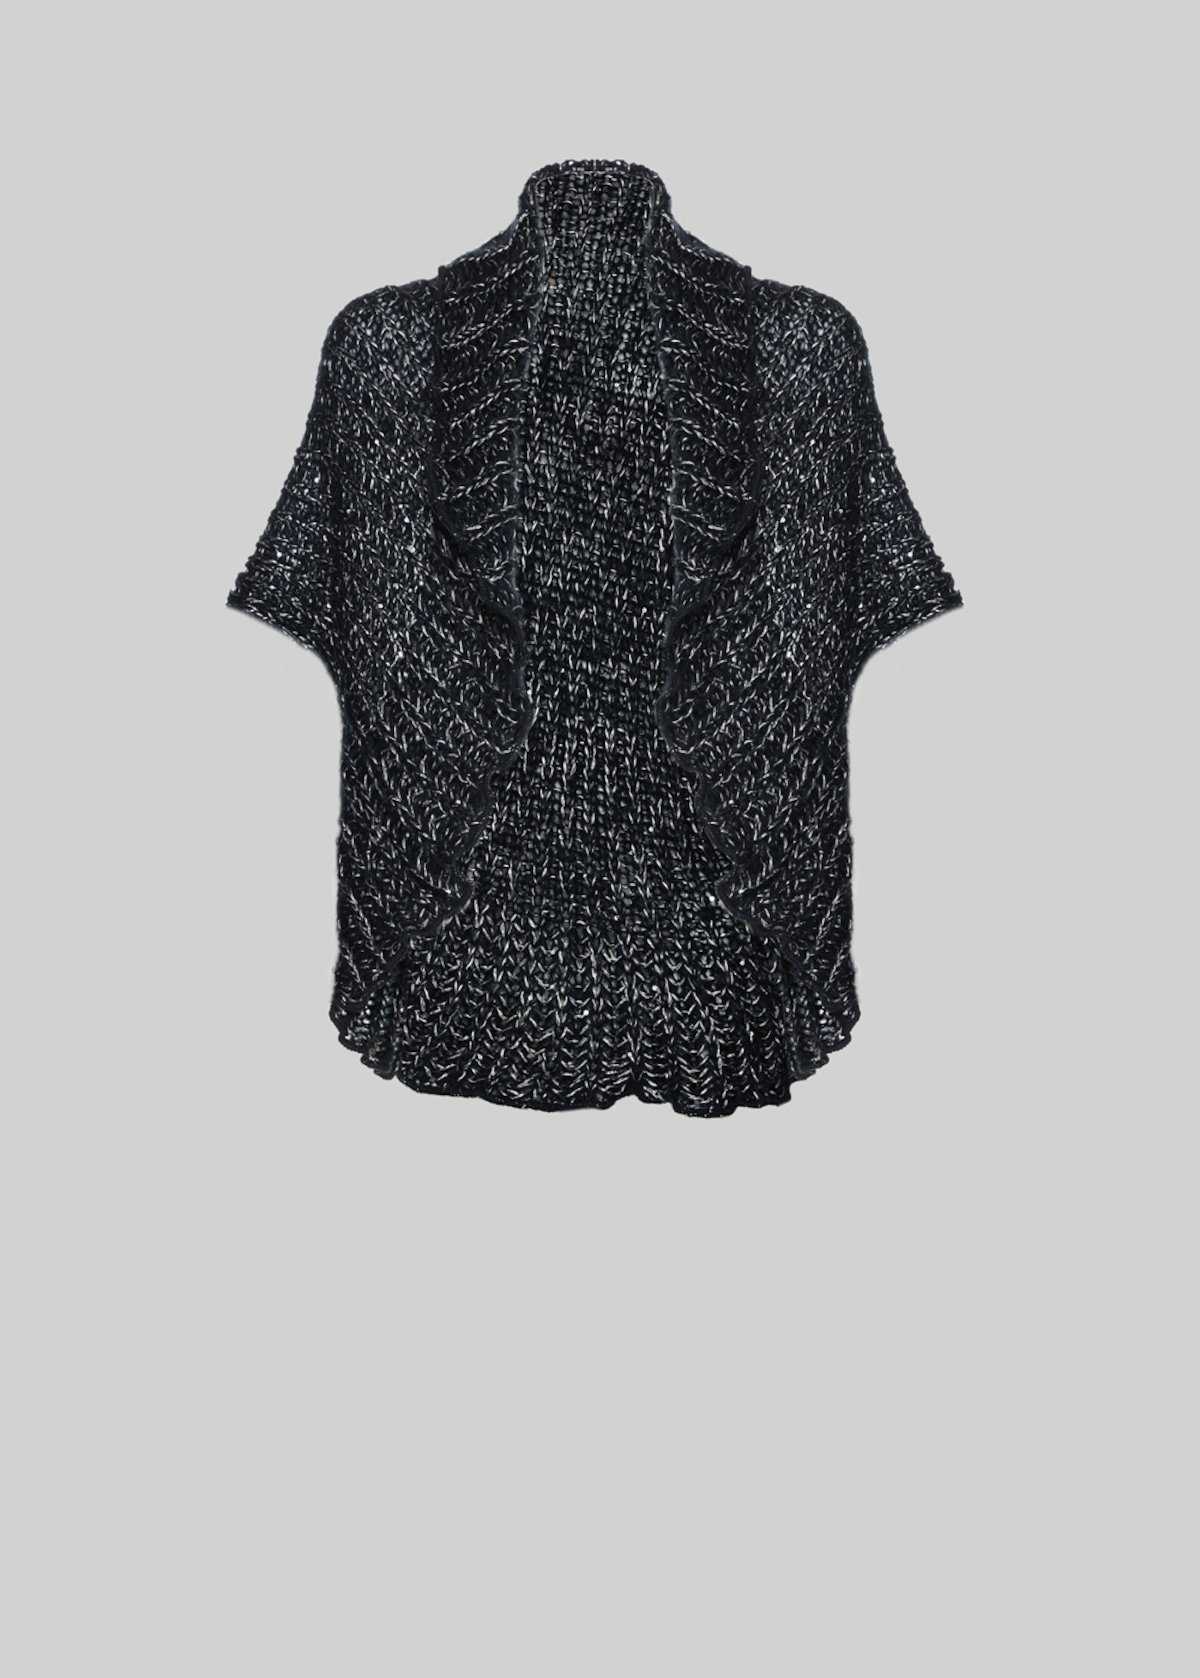 Clea knit shrug with sequins detail